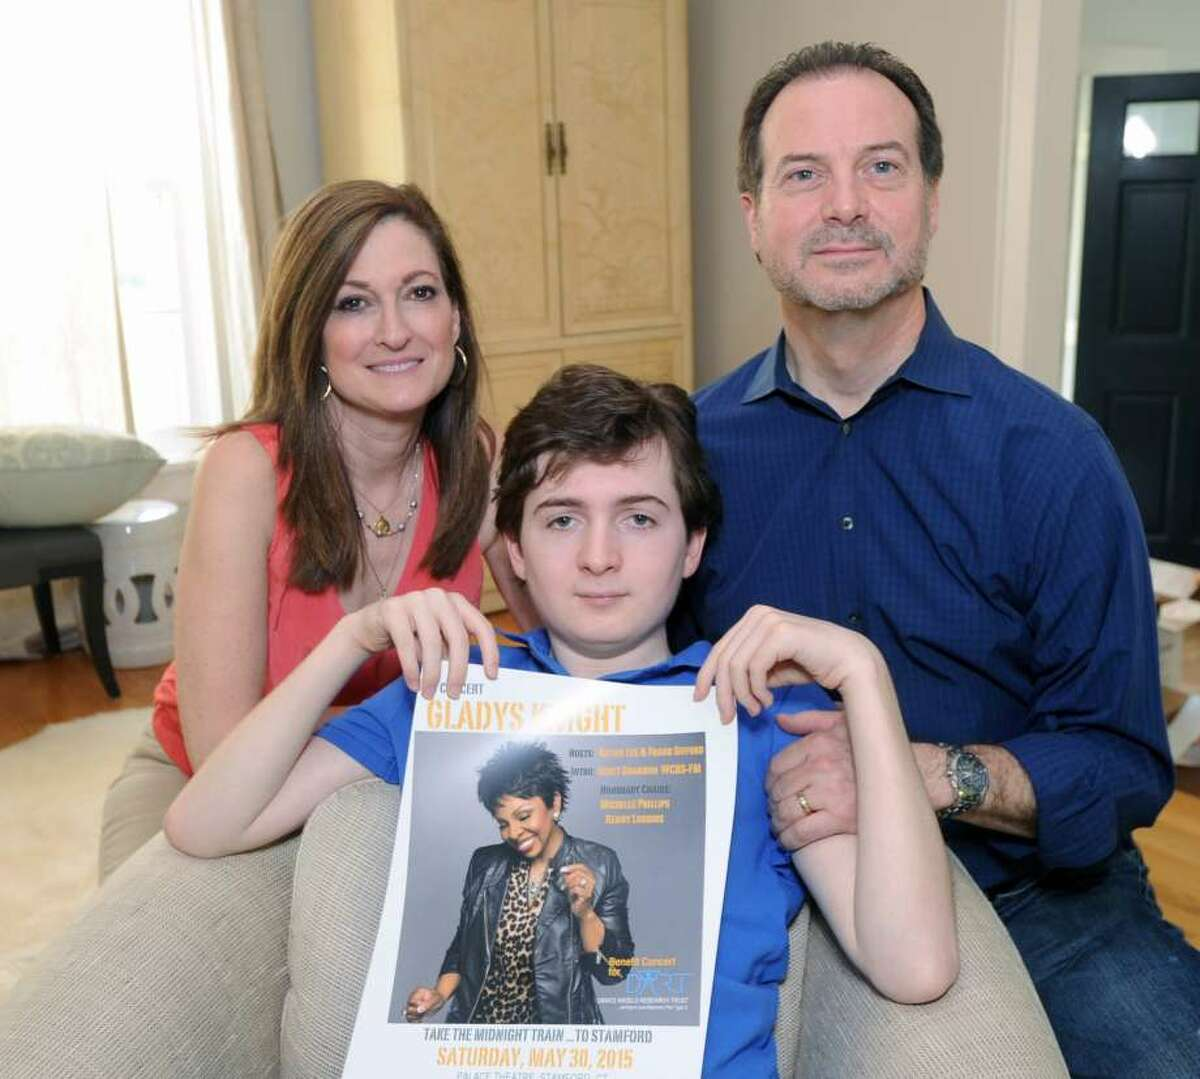 Phil and Andrea Marella with their son, Andrew Marella, now 17, hold up a poster for a benefit concernt last year.